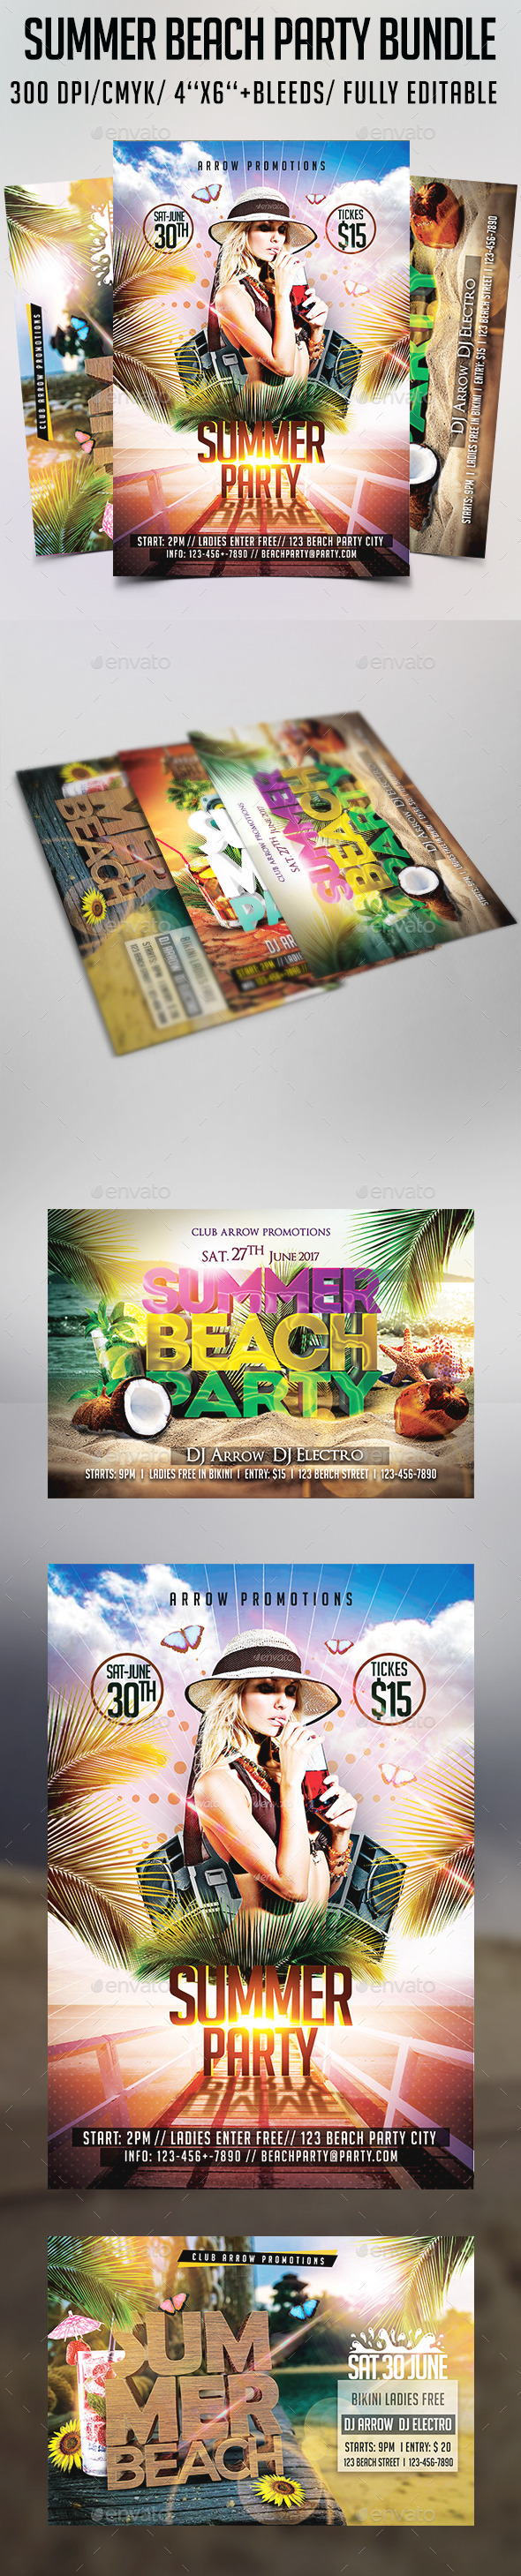 Summer Beach Party Flyer Bundle - Clubs & Parties Events